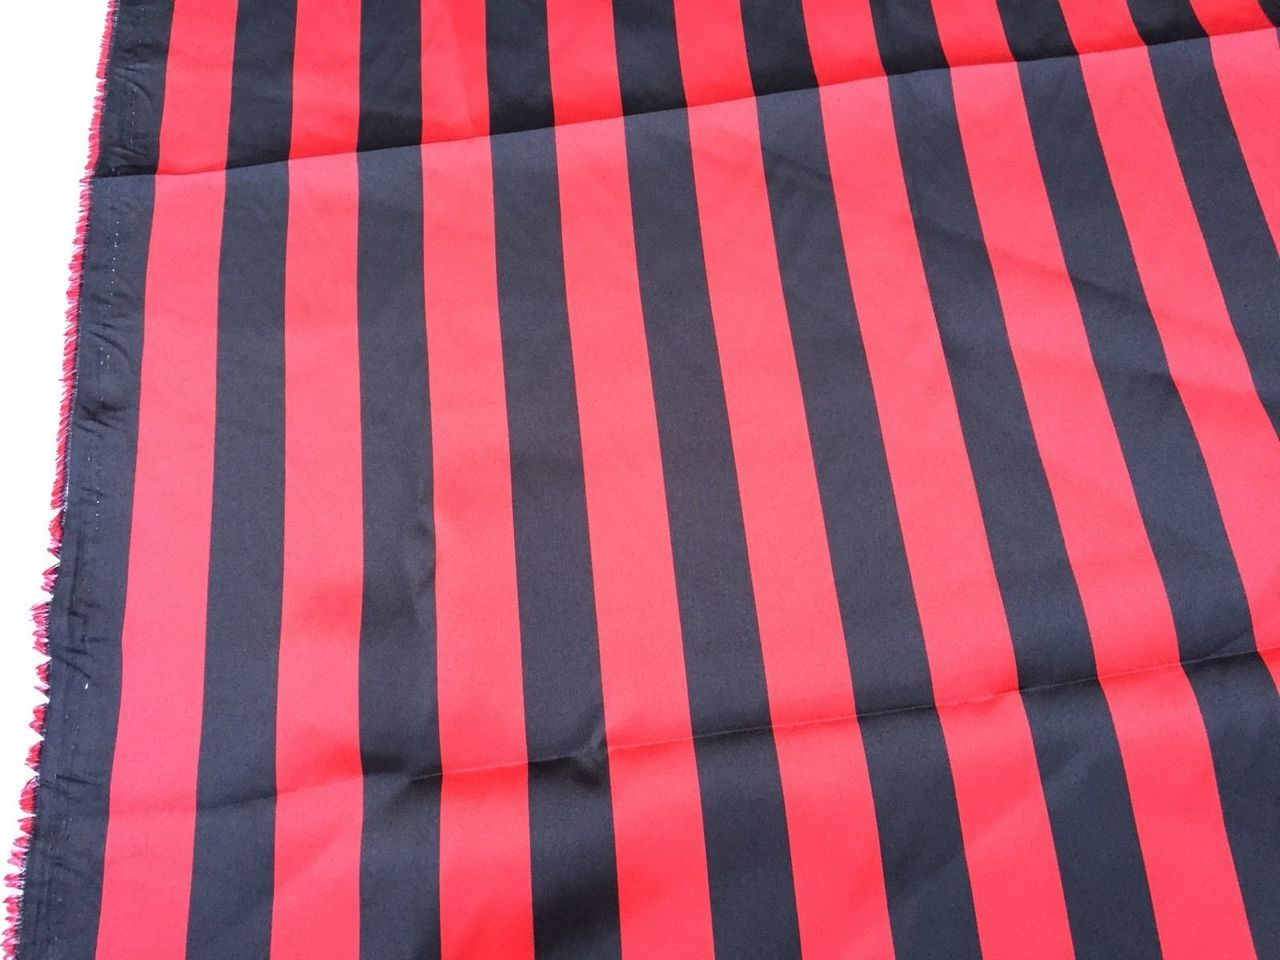 Red/black 1inch Stripe Soft/silky Charmeuse Satin Fabric. Sold By The Yard. - KINGDOM OF FABRICS